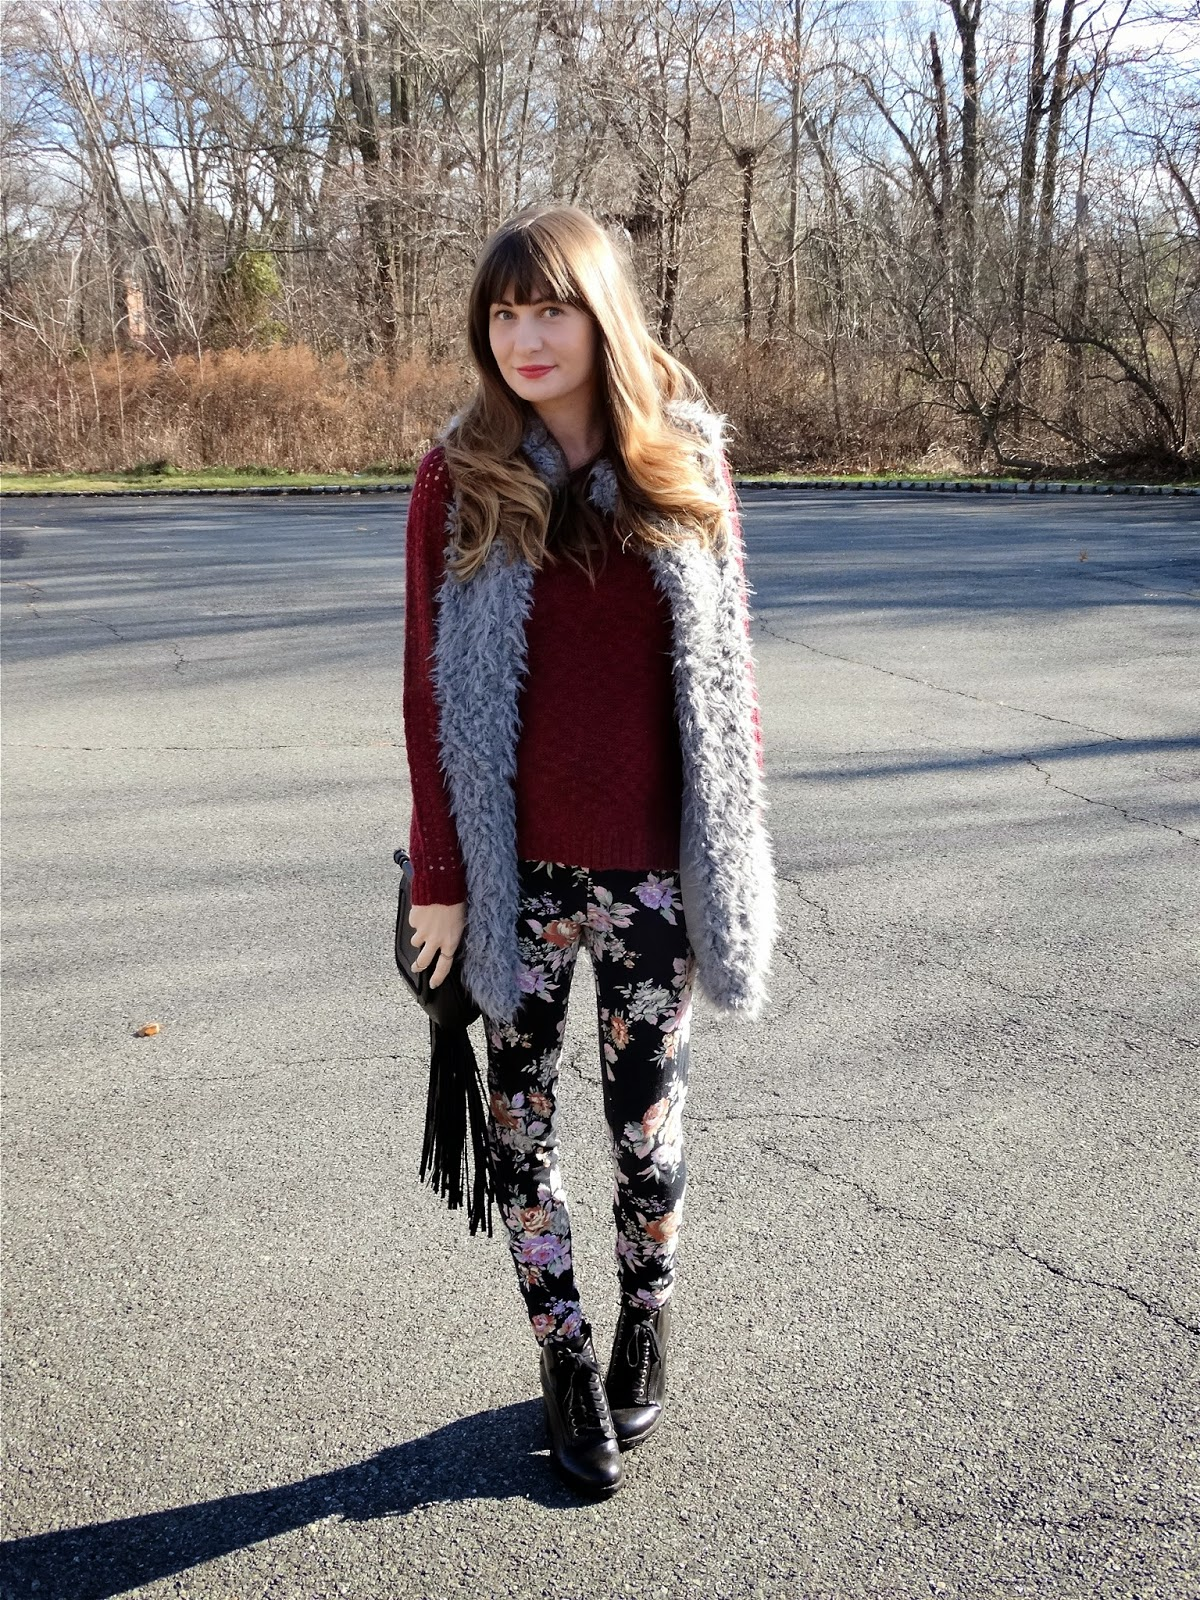 Faux fur vests Forever 21 | House Of Jeffers fashion blog | www.houseofjeffers.com